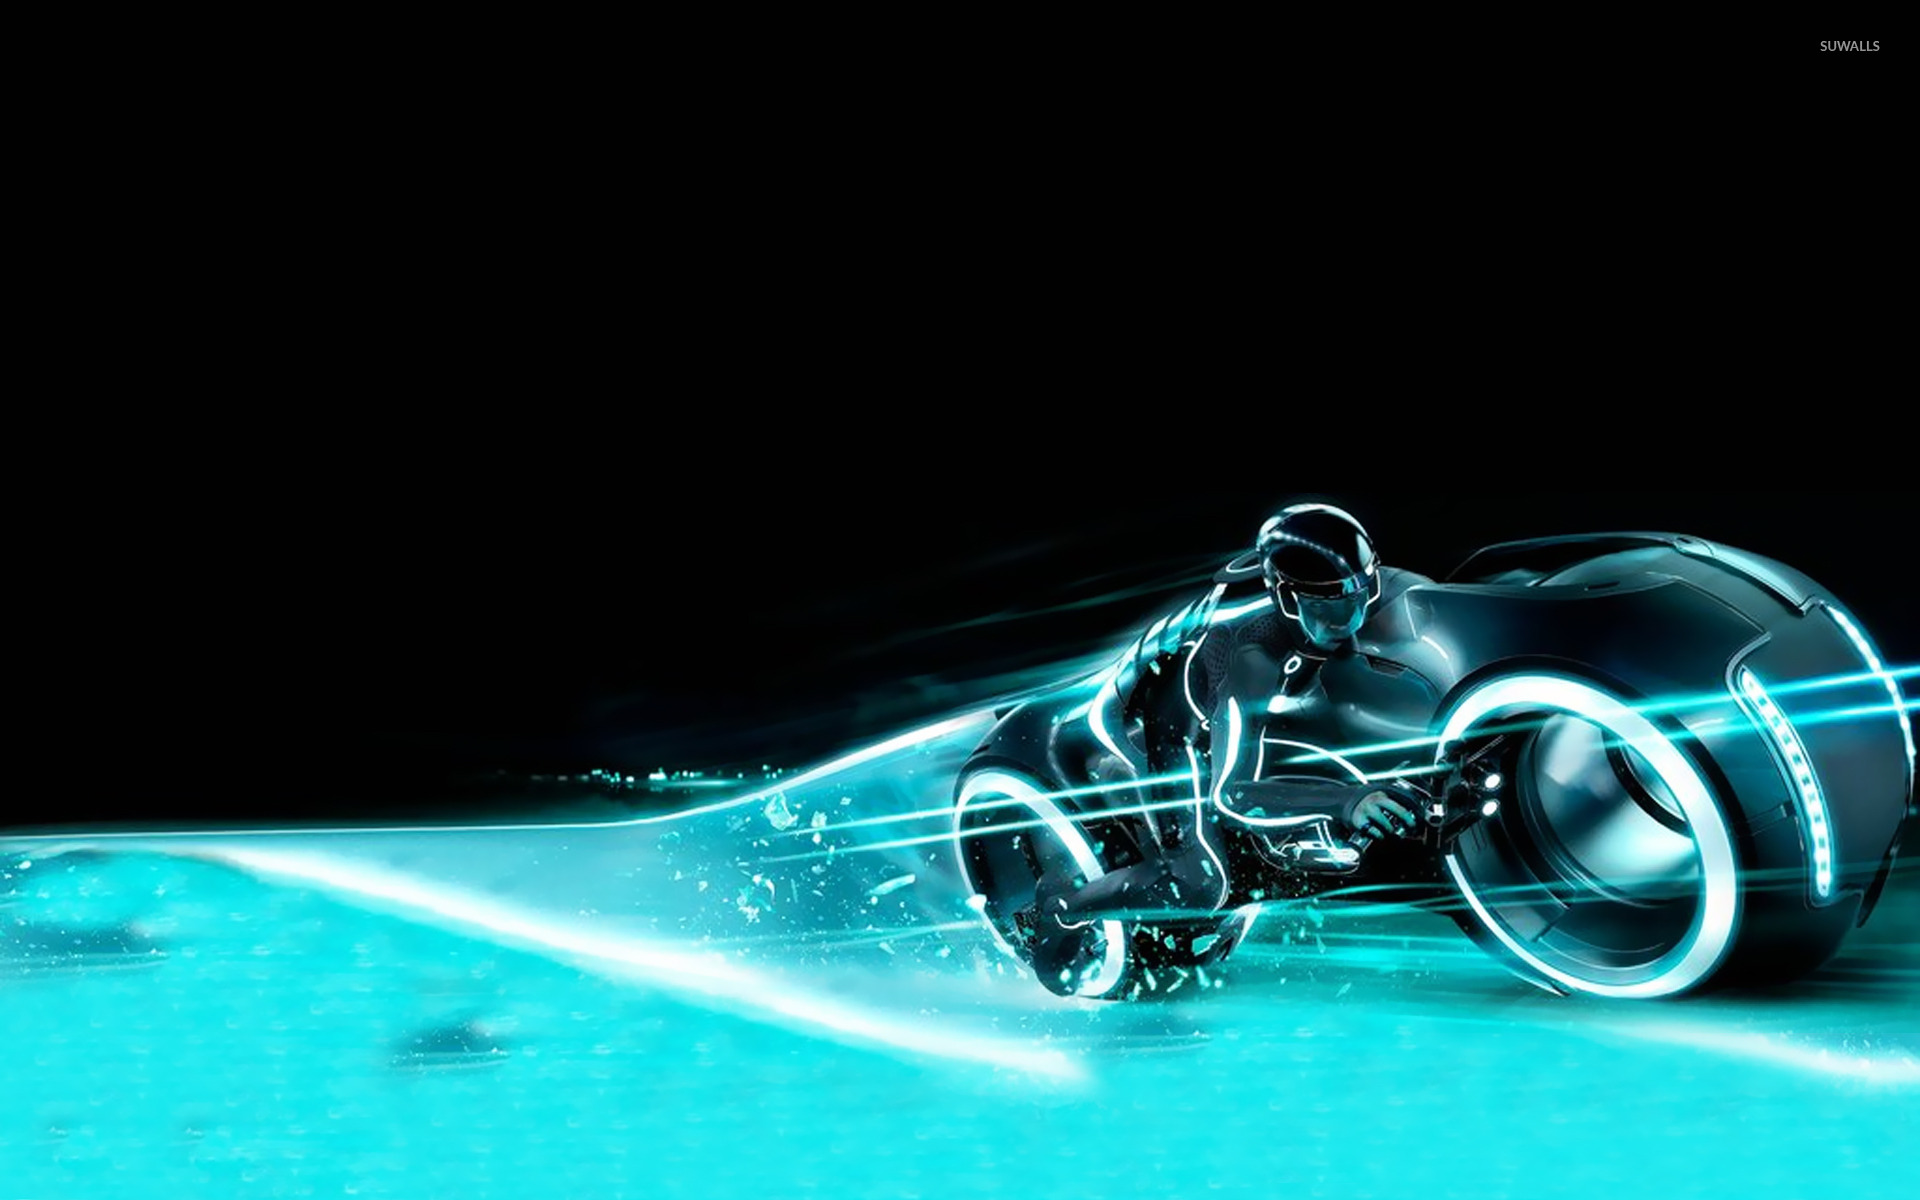 tron: legacy [6] wallpaper - movie wallpapers - #14201